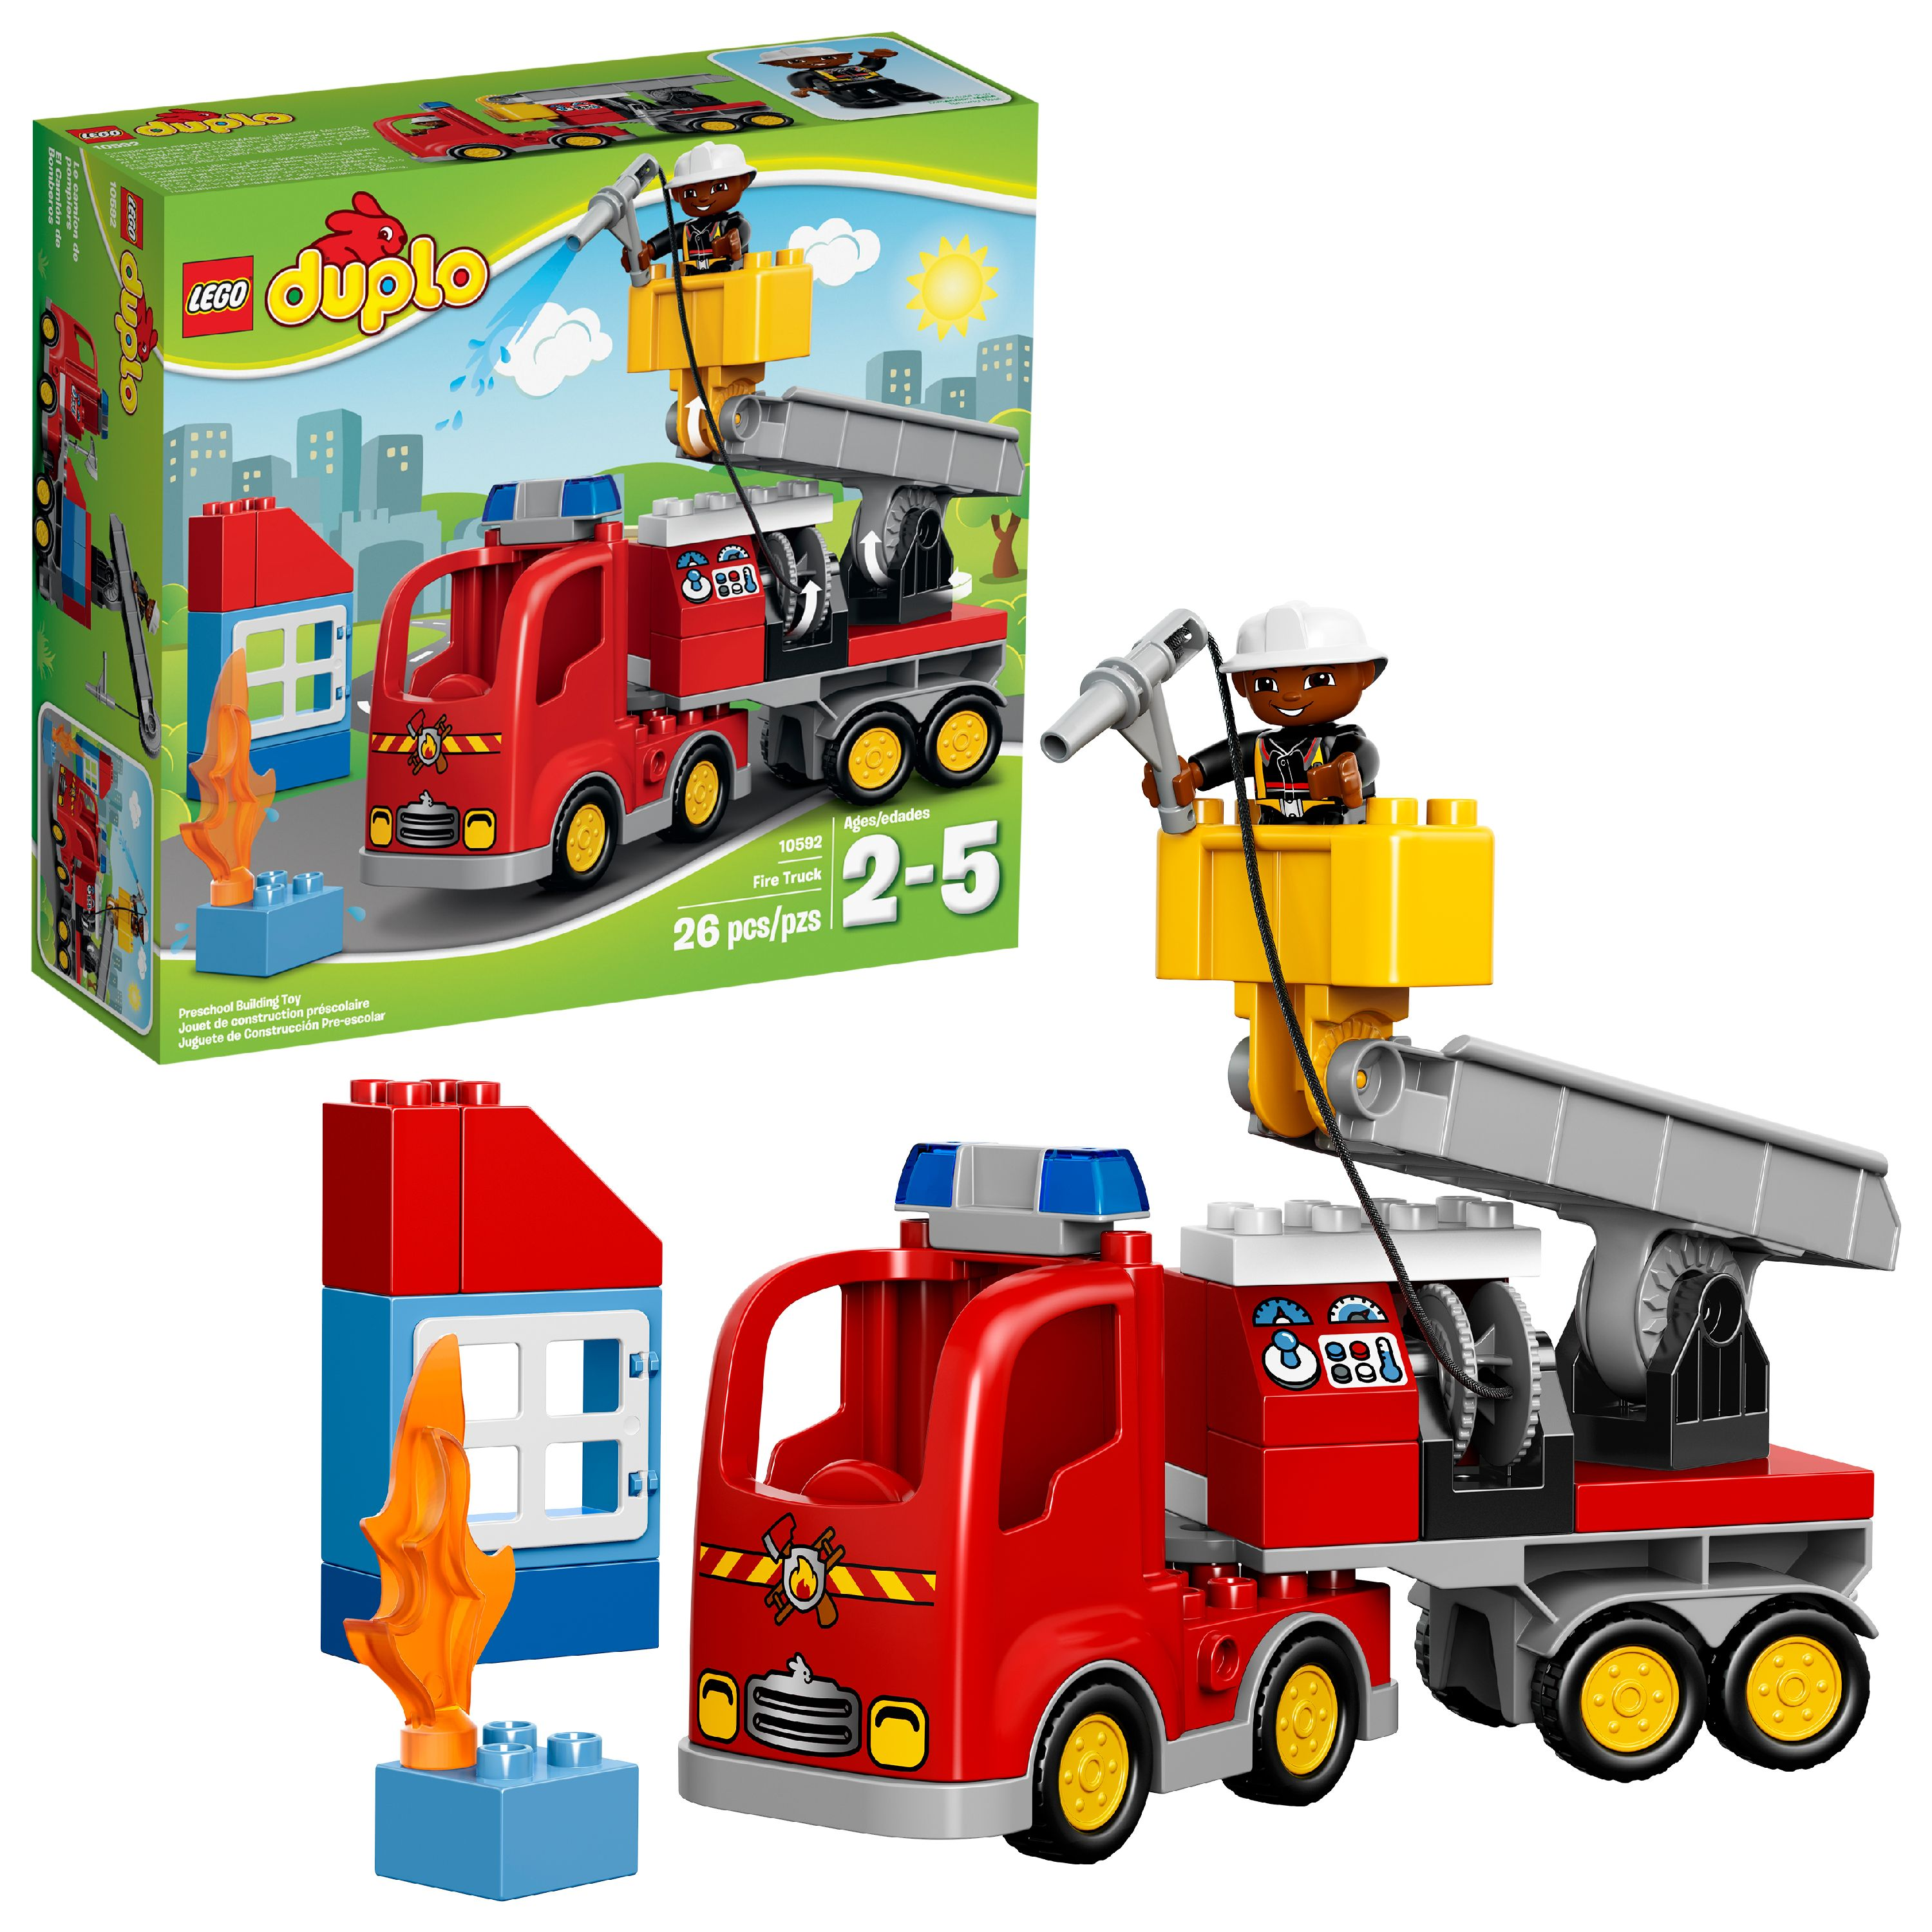 LEGO DUPLO Town Fire Truck 10592